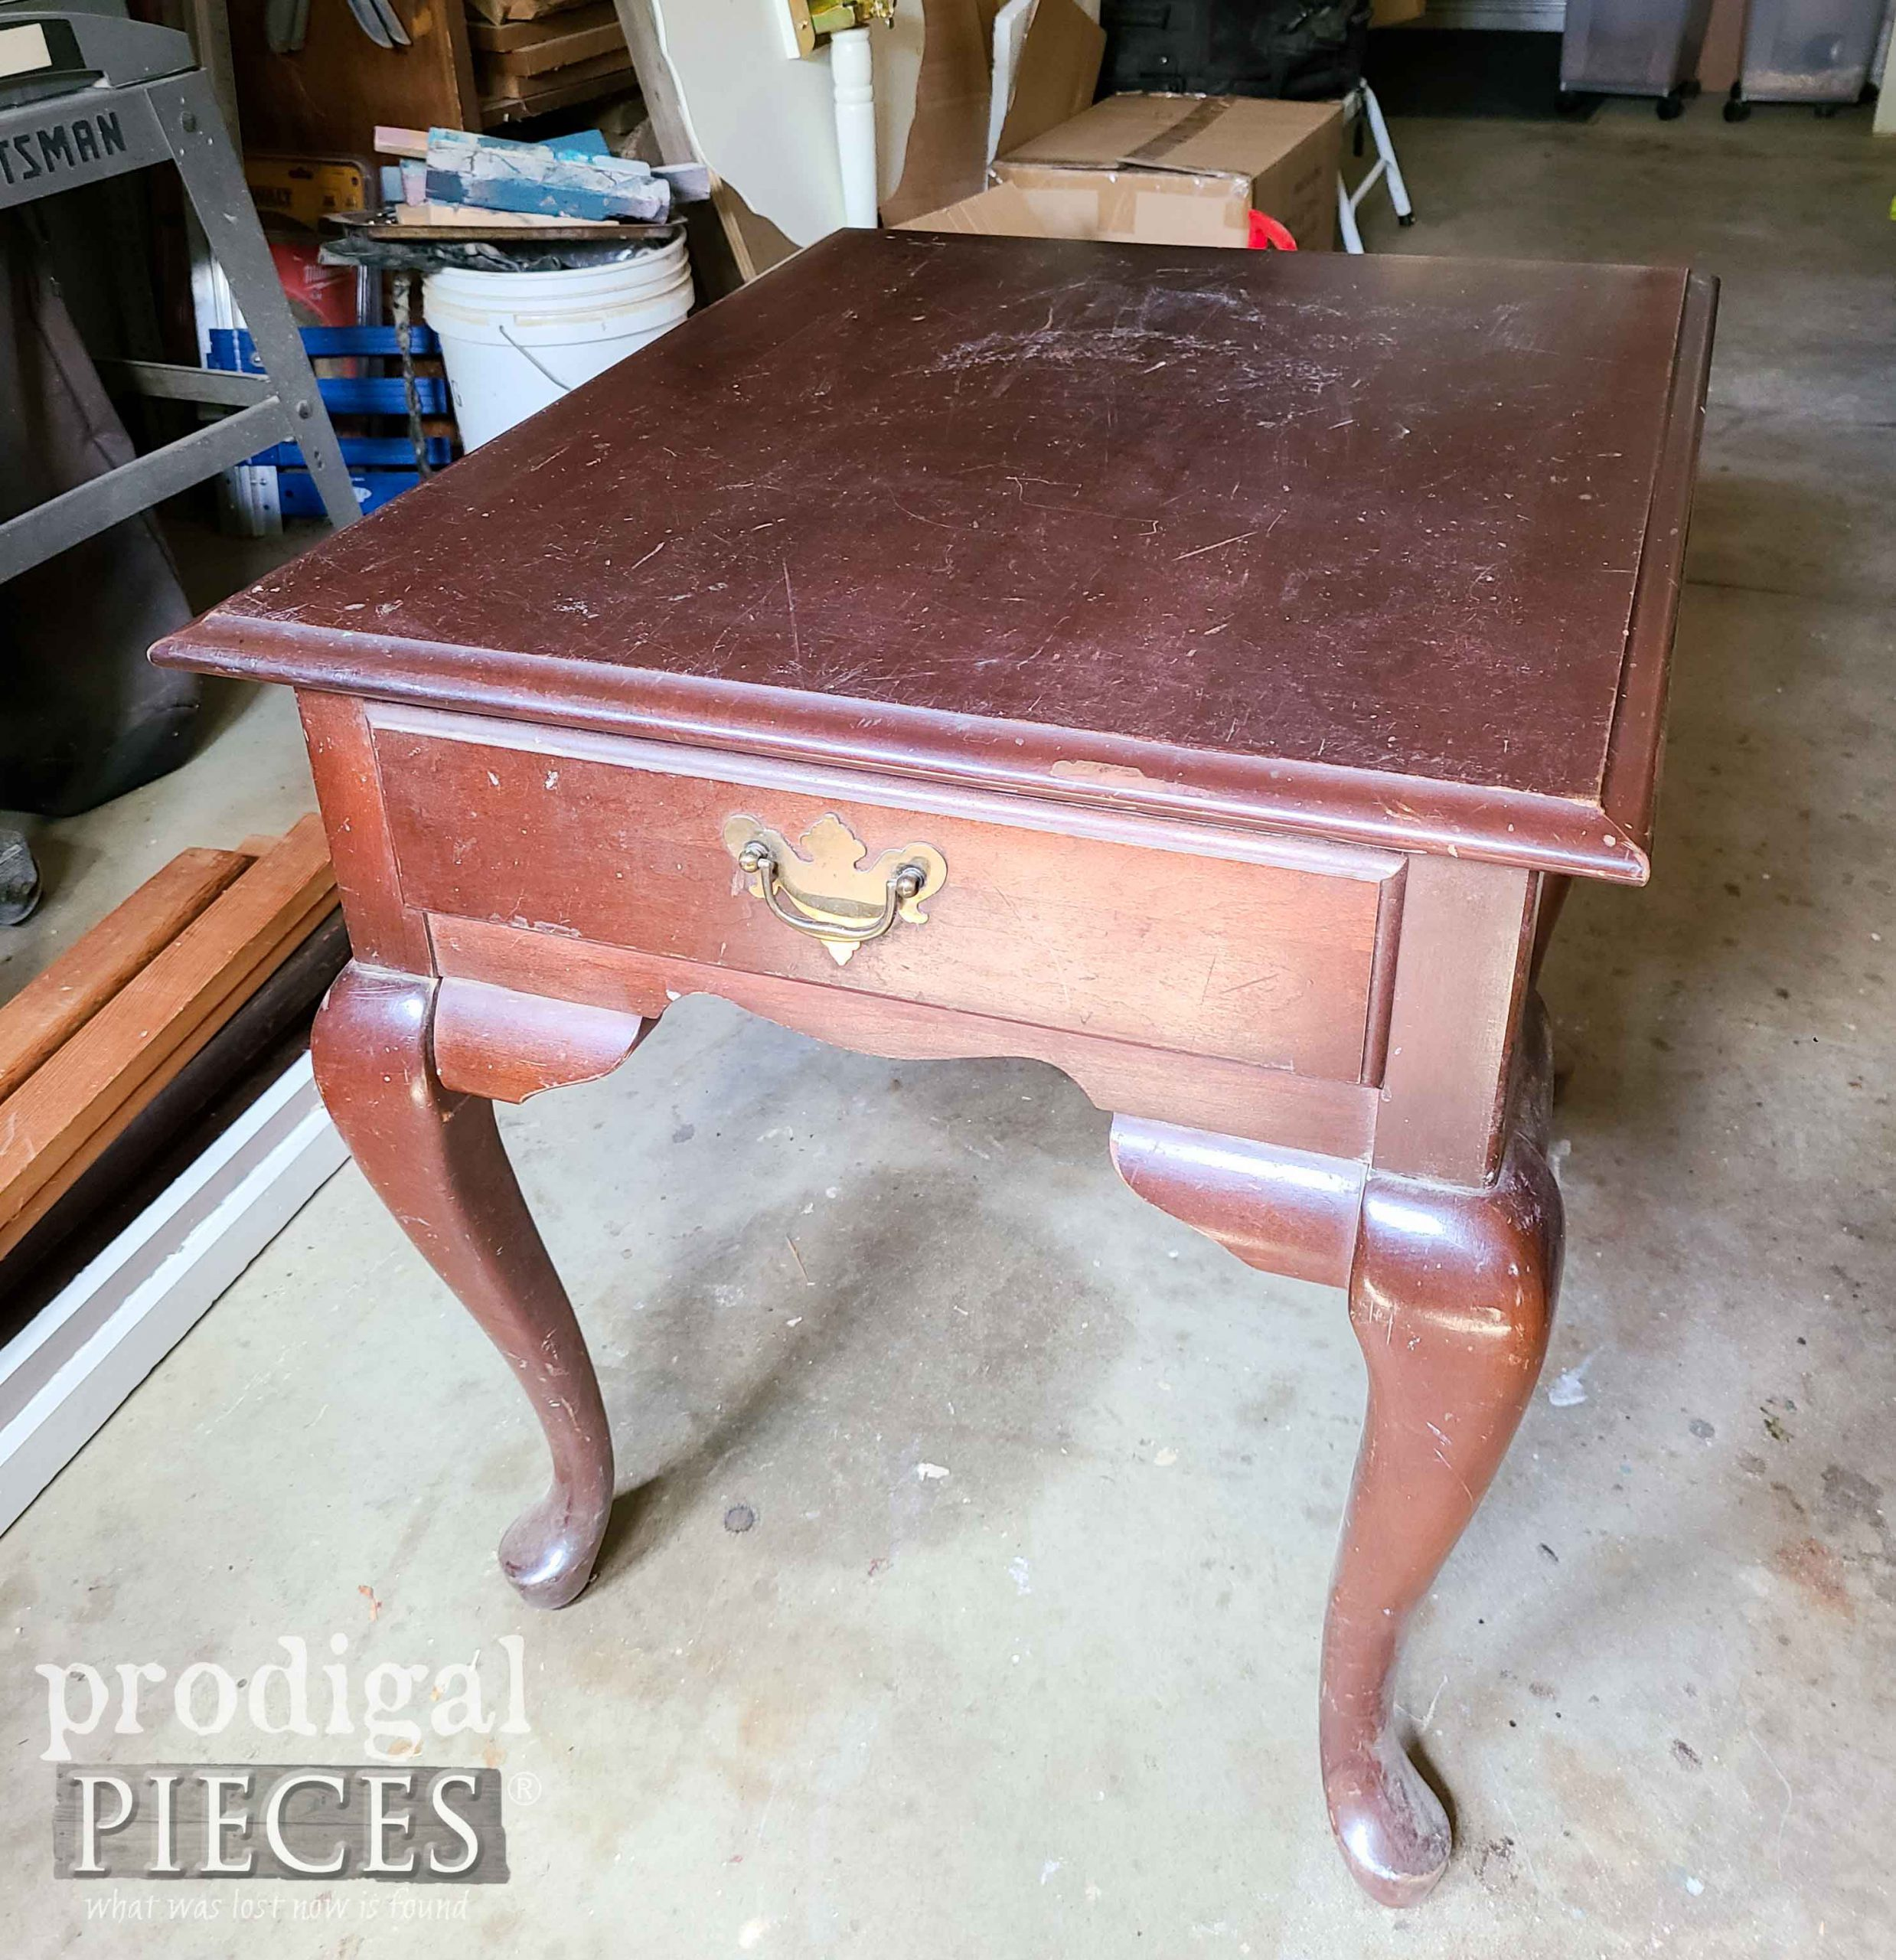 Queen Anne Table Before Makeover | prodigalpieces.com